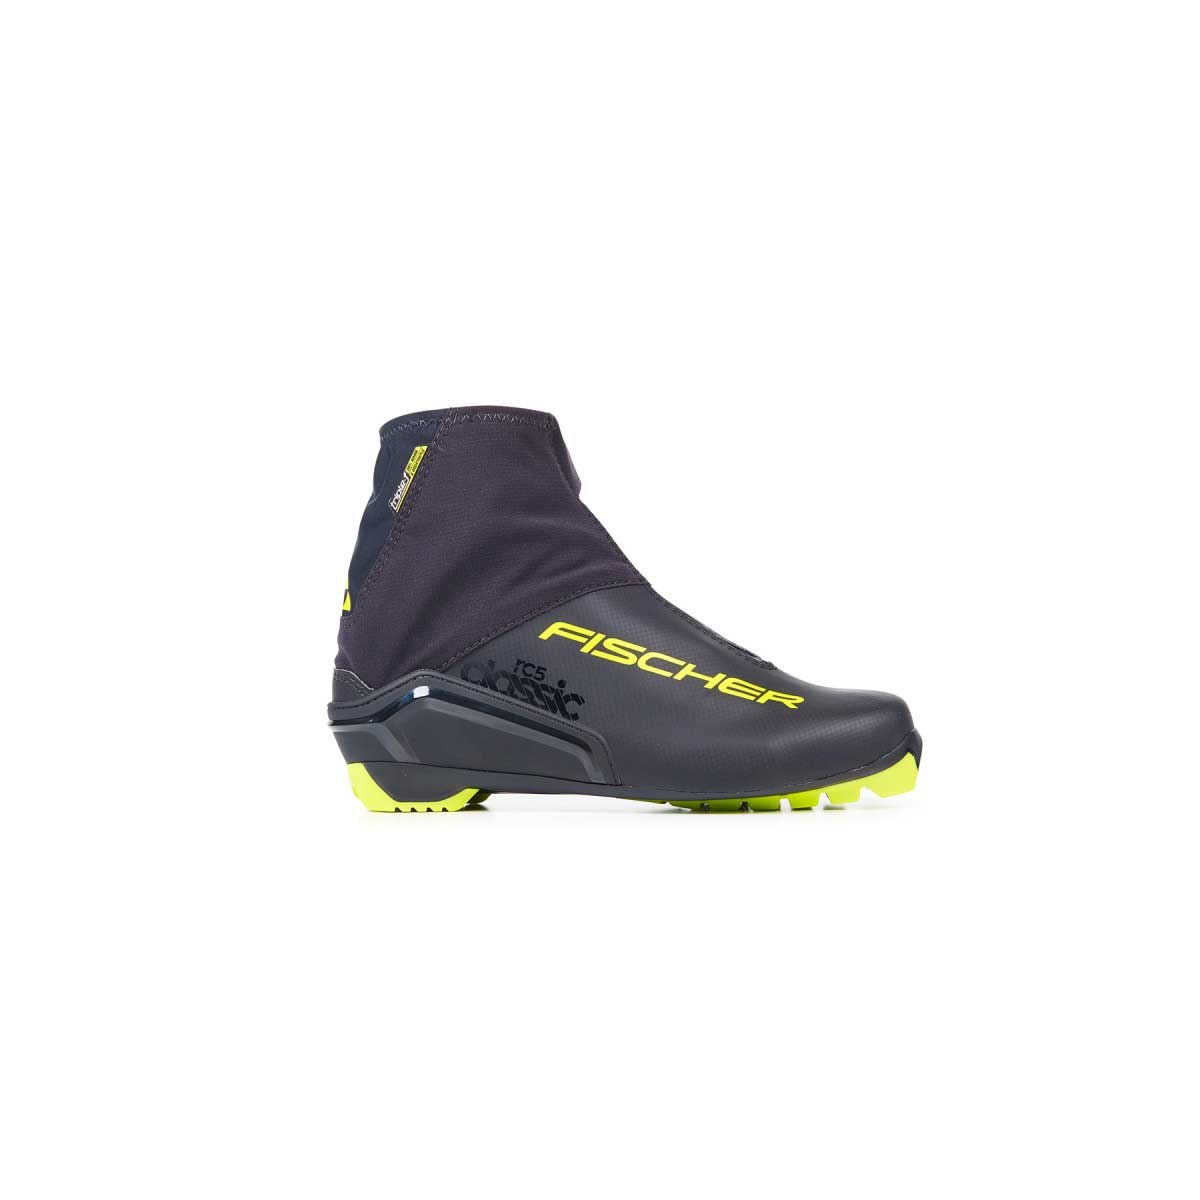 Fischer RC 5 Classic Boot in Black and Yellow